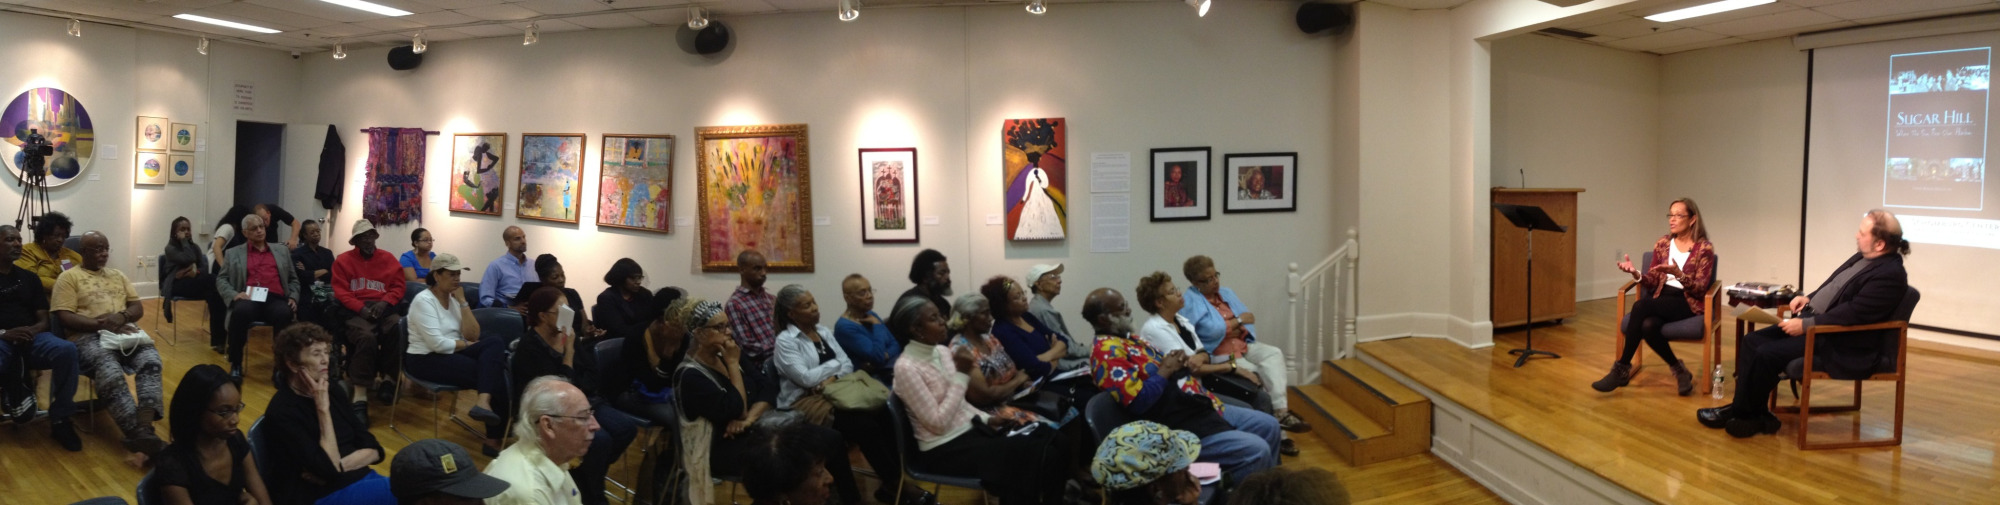 """In NY, on 9/26/12, at the Schomburg Center's """"Before Five"""" Speaker Series"""